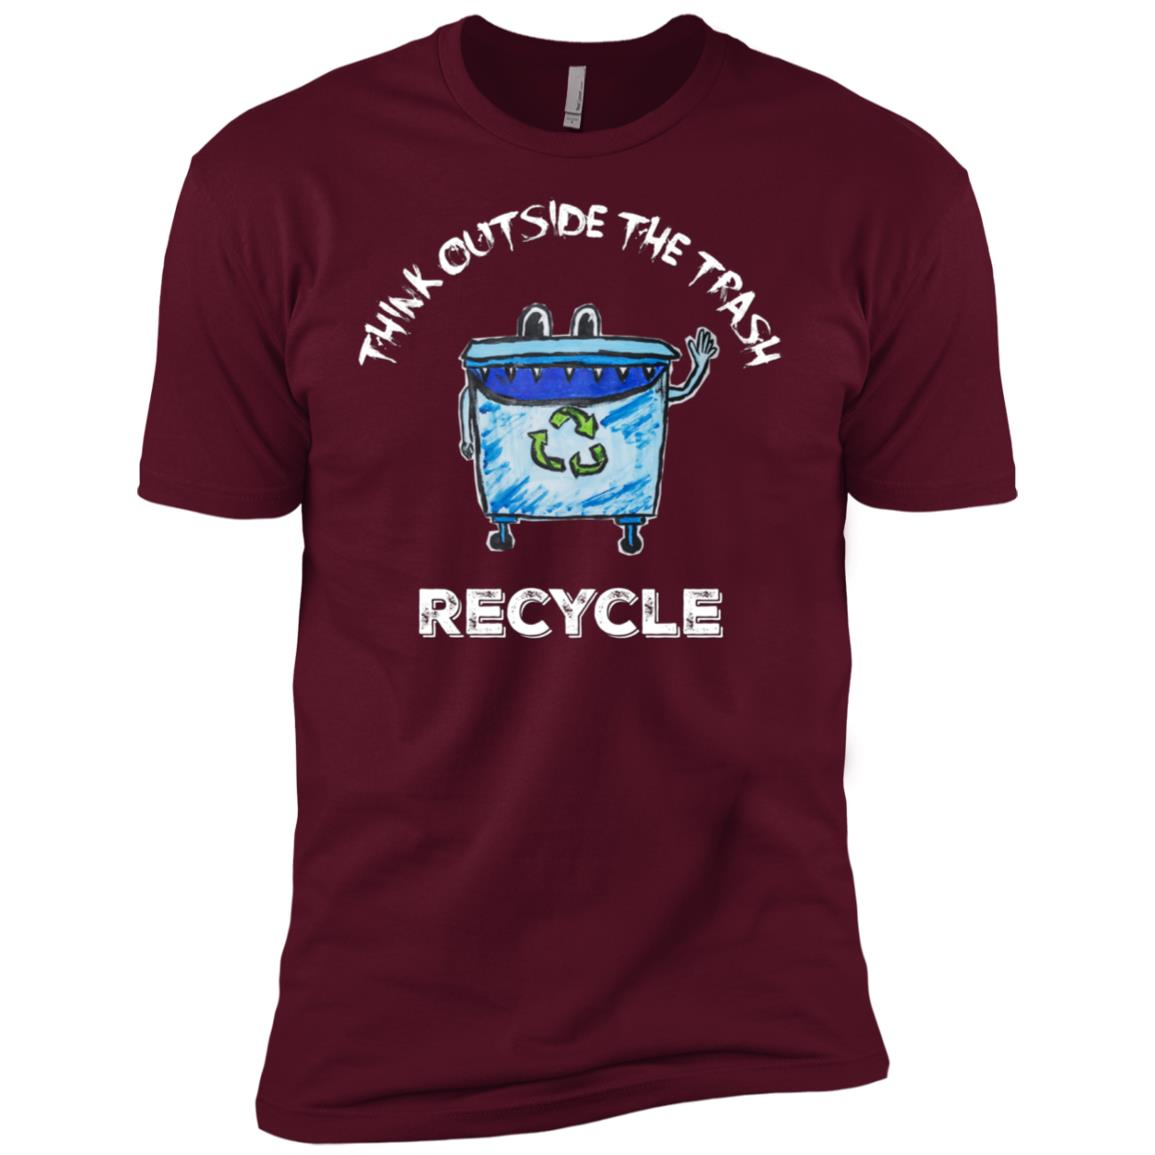 Recycling Waste Management, Environmentalist Gifts-1 Men Short Sleeve T-Shirt